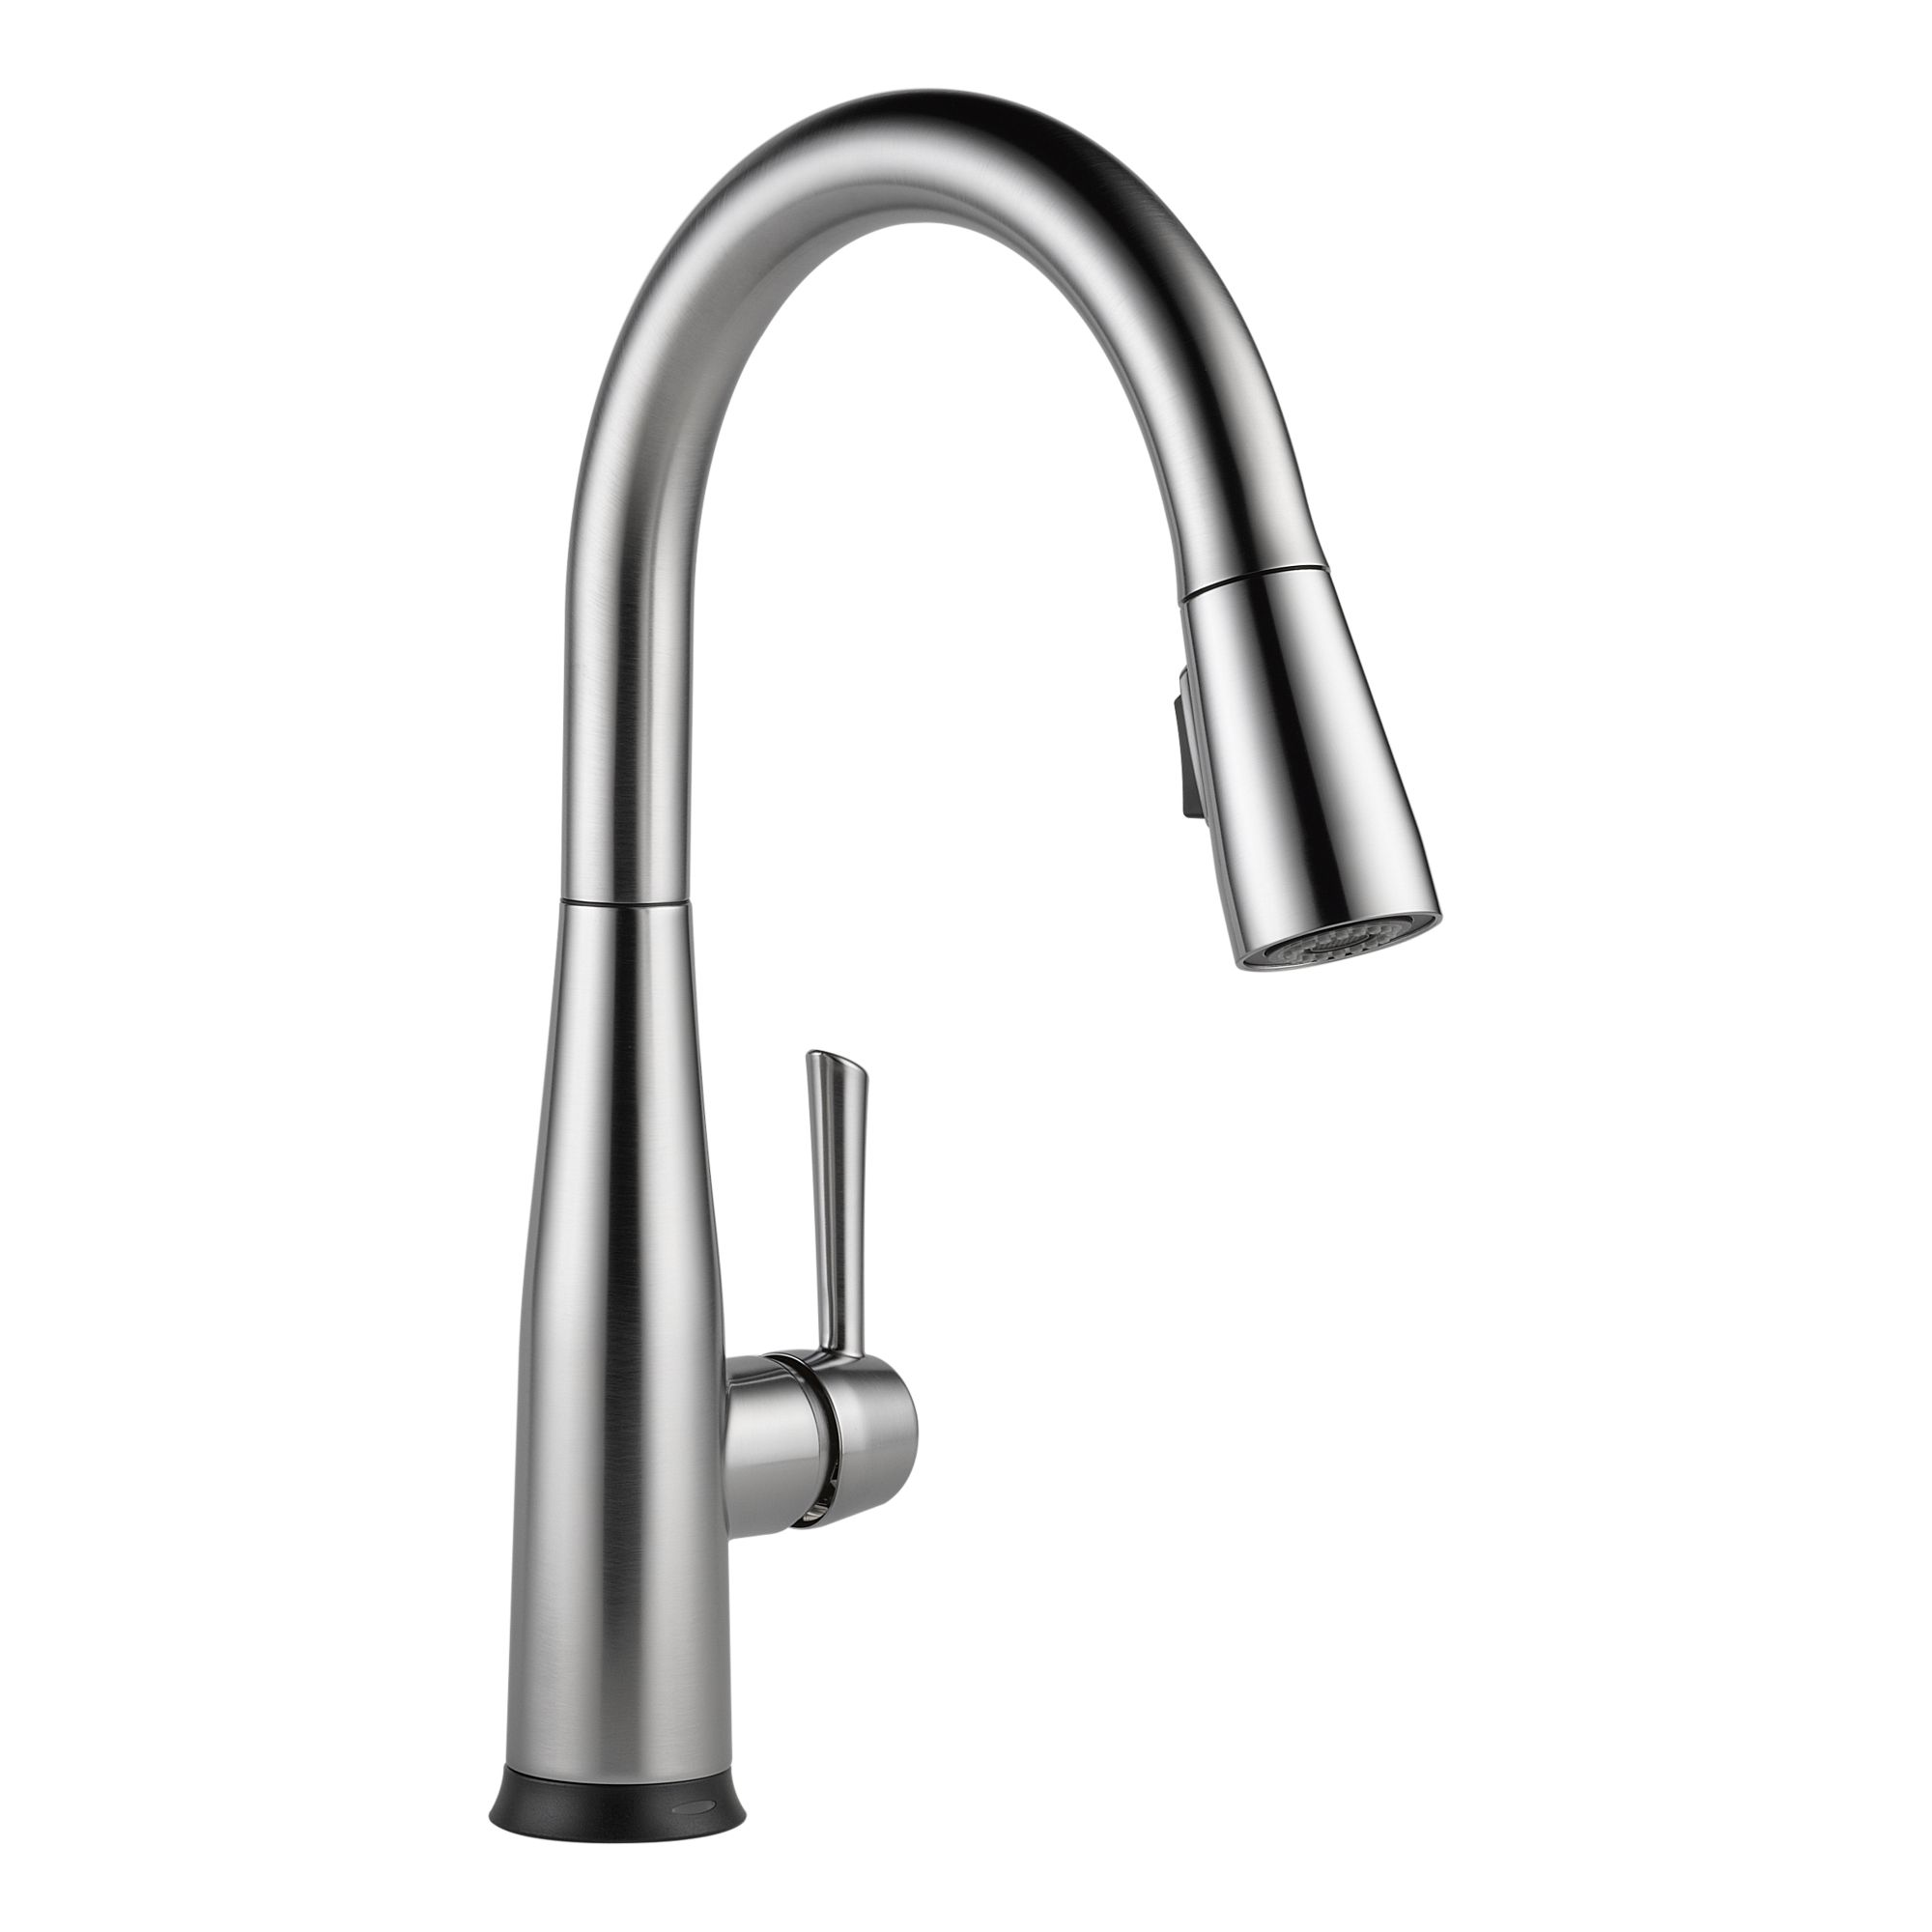 delta faucet leland highest rated review arc bathroom moen sprayer spring high side bridge kitchen faucets with miseno cassidy